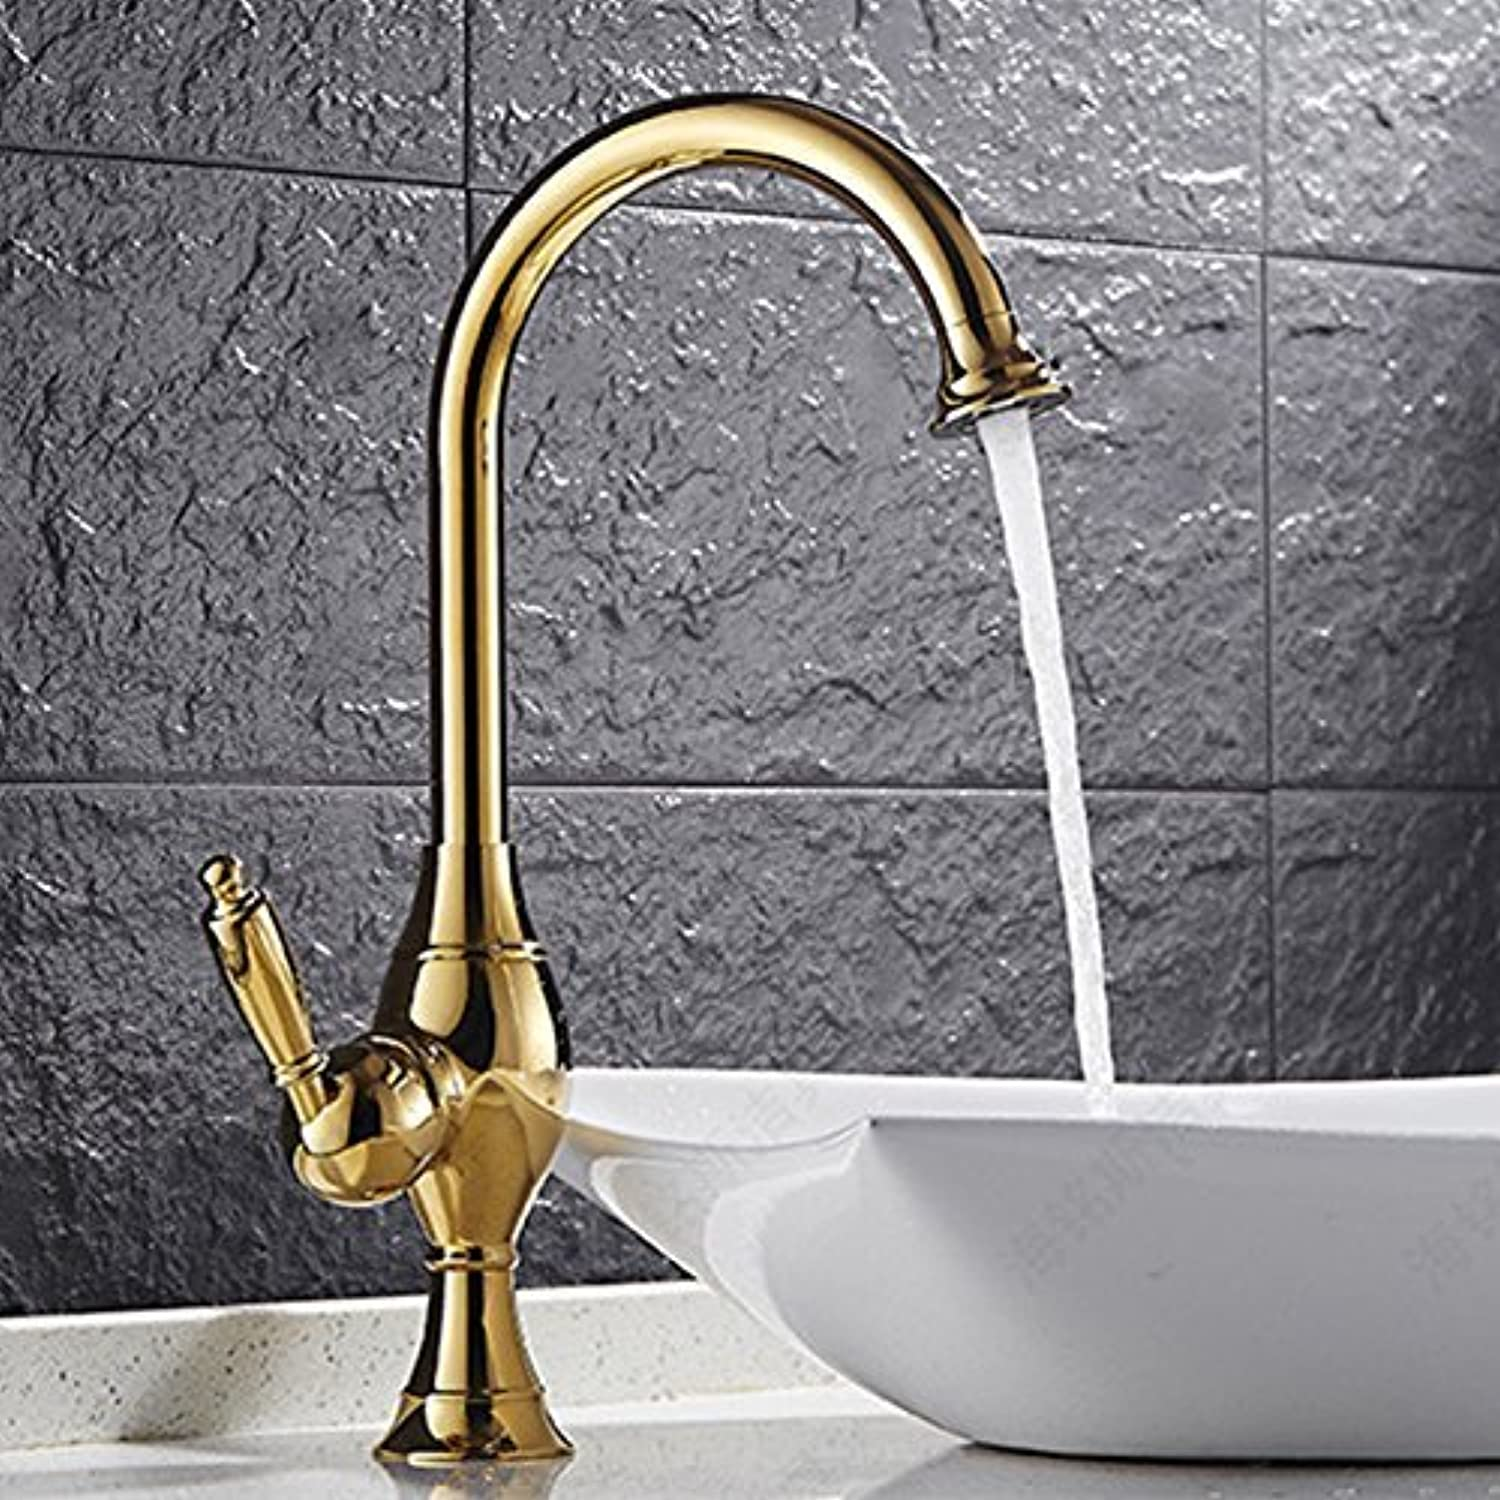 Two of The color of Money & Cysdv Blacck Mixer Kitchen Sink of Good Quality and The Performance of wash Basin Faucet Dona, gold